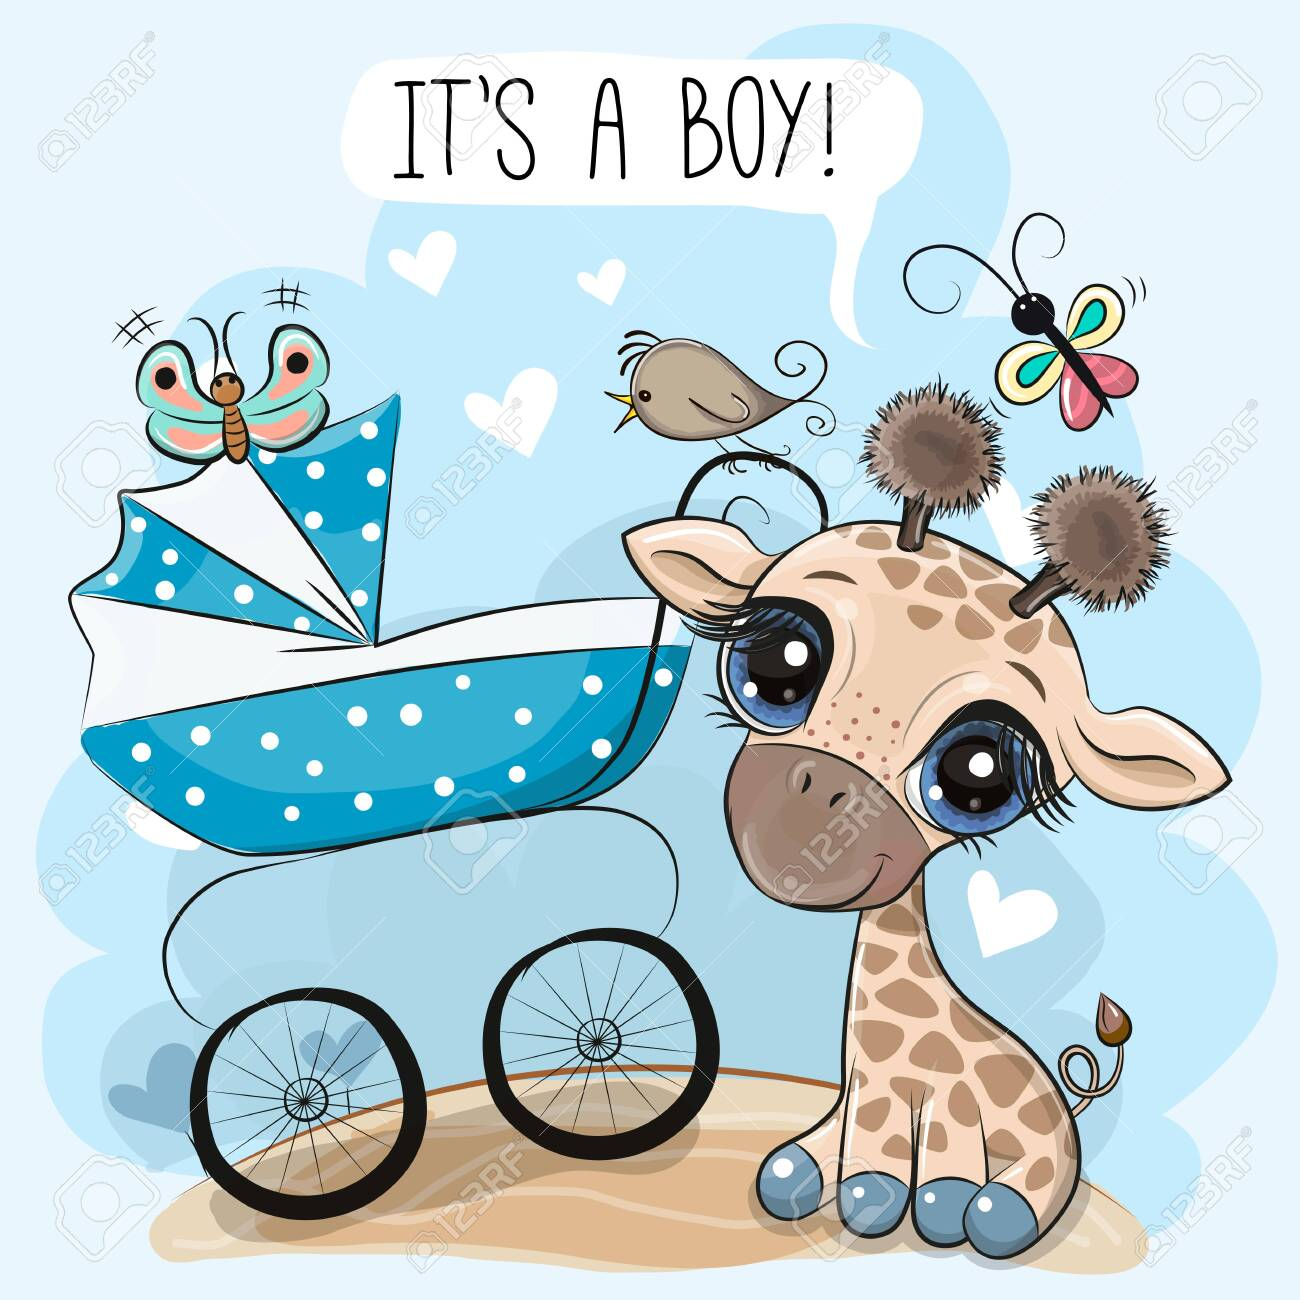 Greeting card its a boy with baby carriage and Cute Giraffe - 145924670